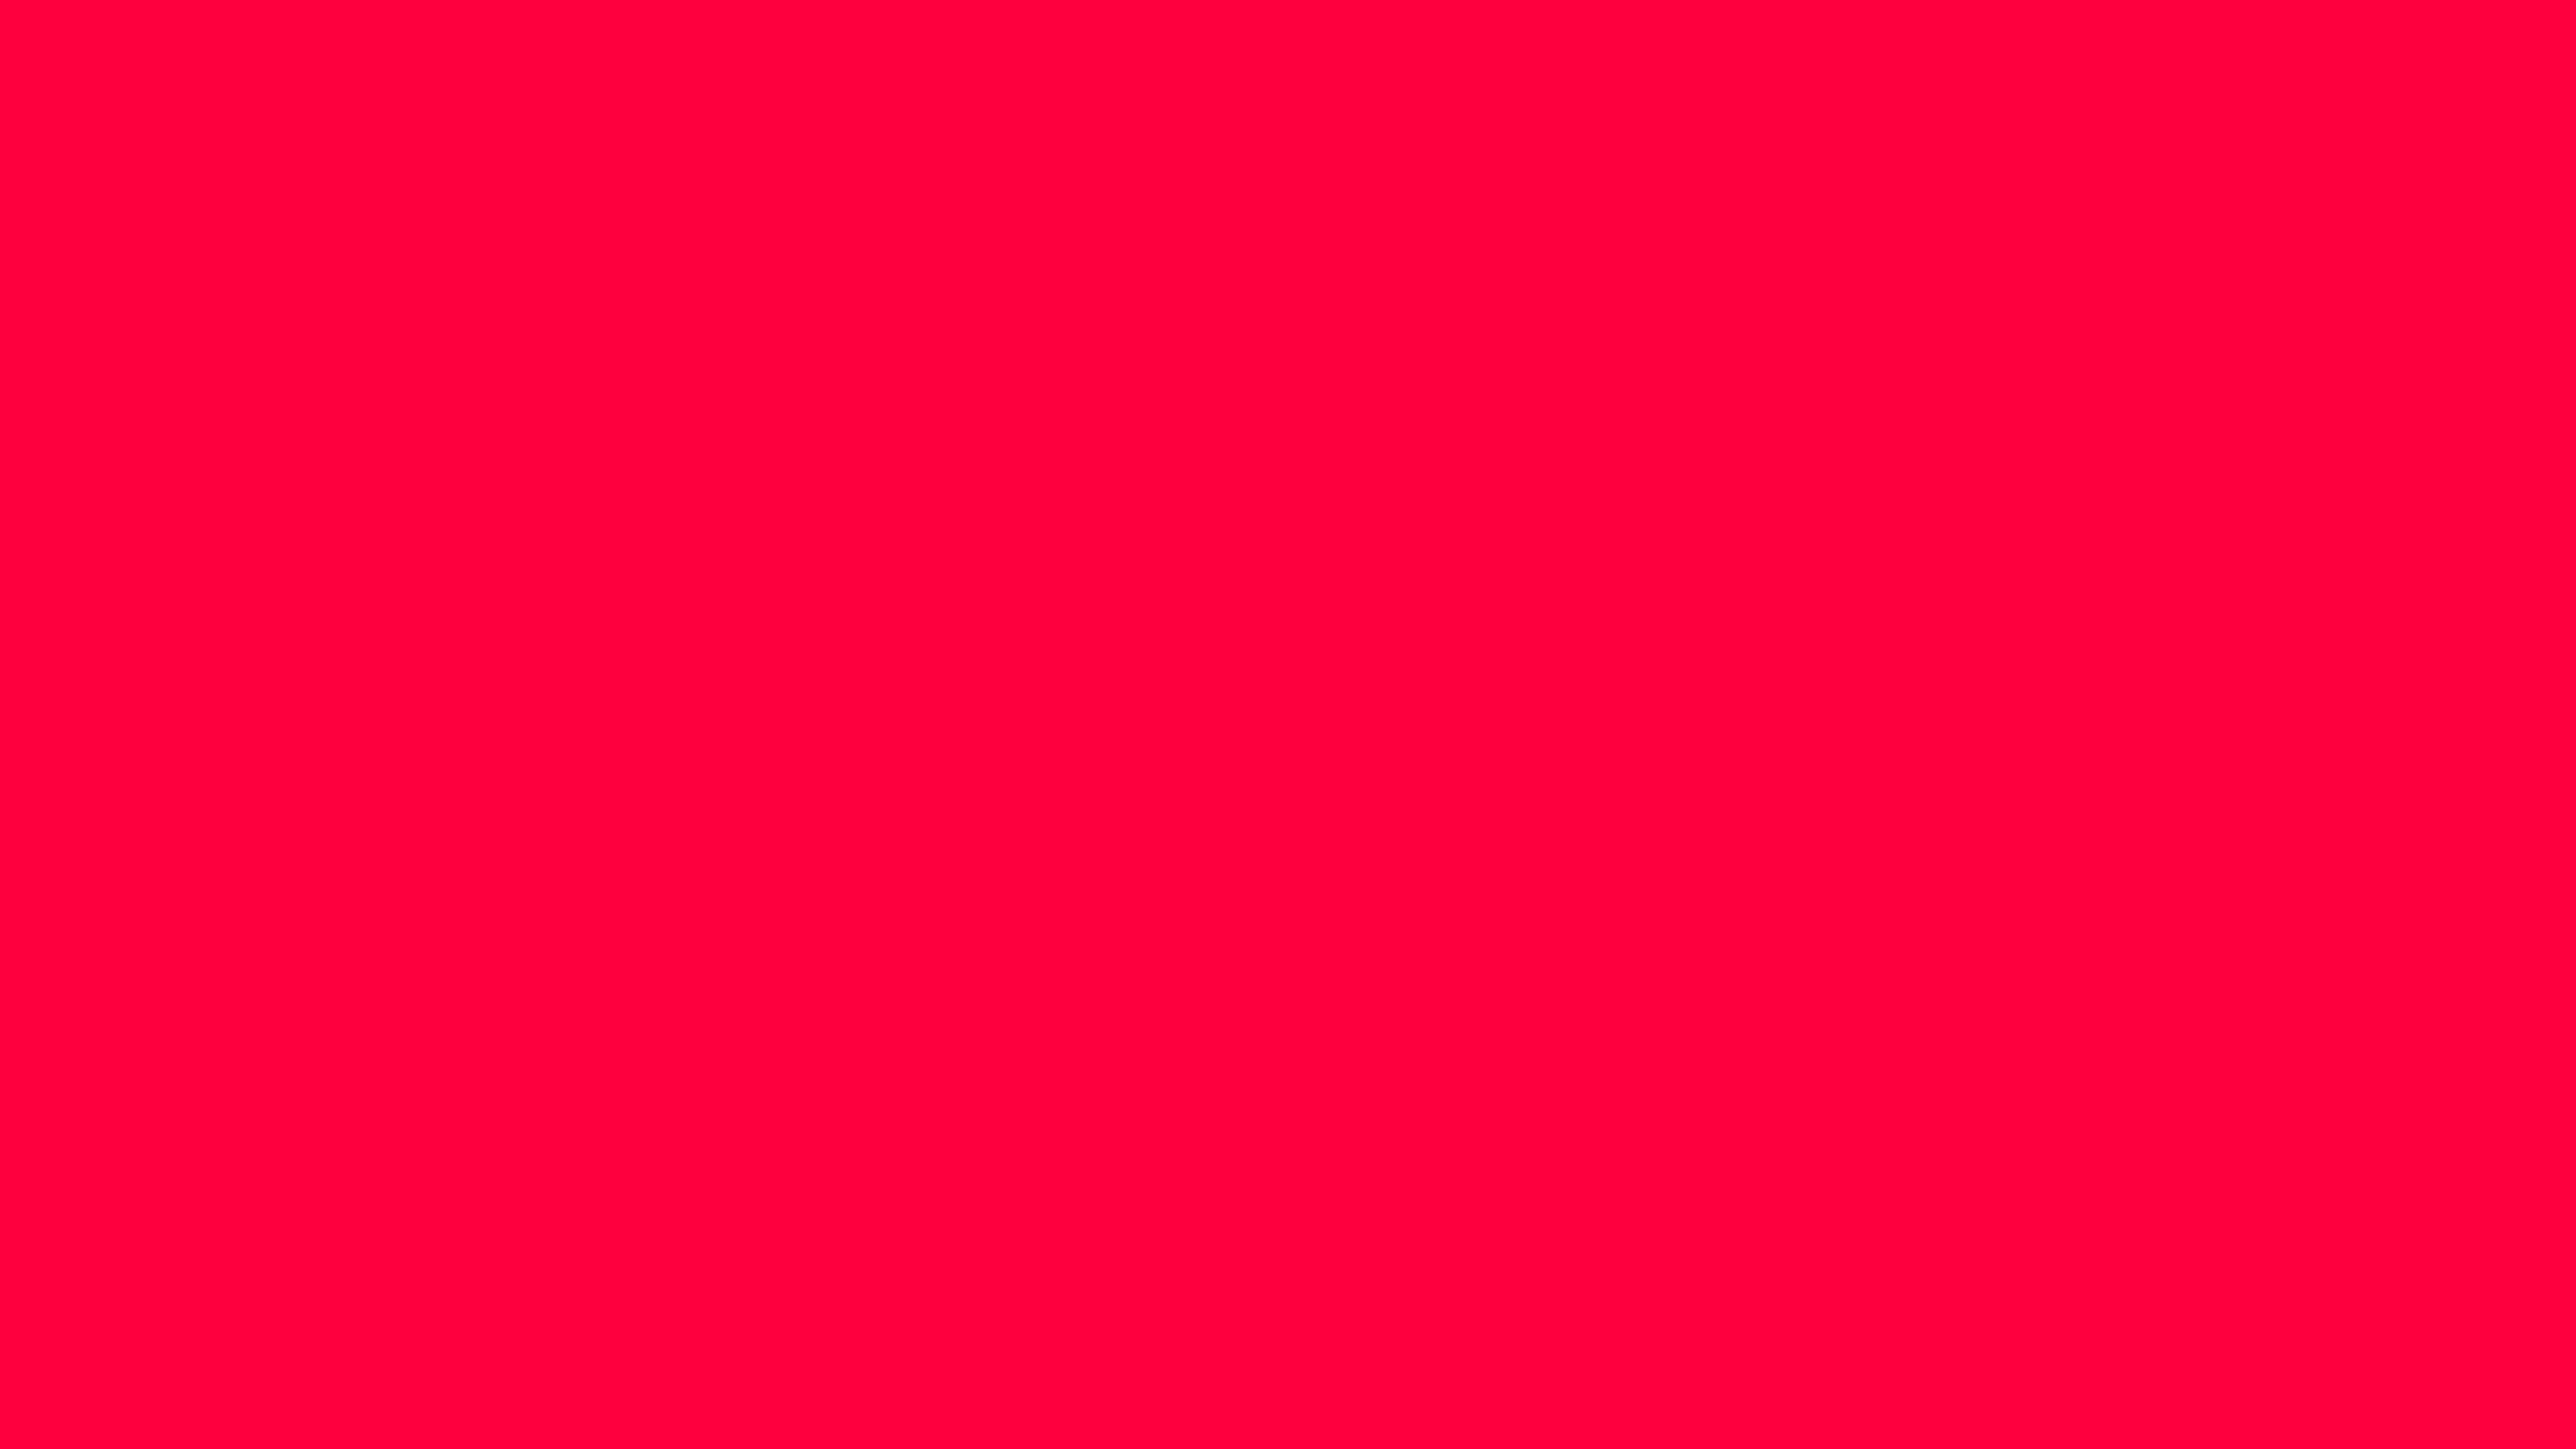 3840x2160 Electric Crimson Solid Color Background